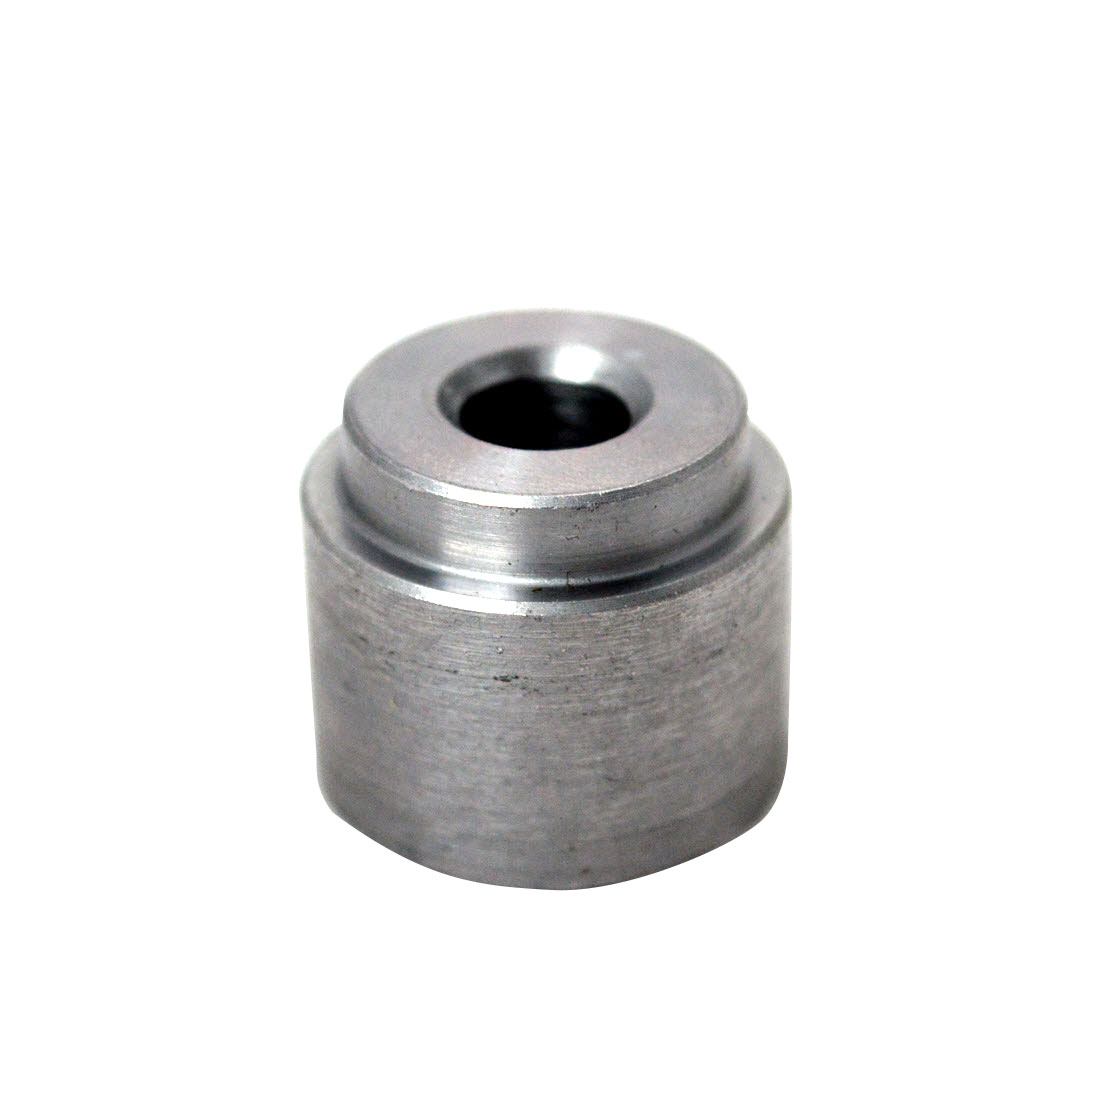 M14 1 5 Well For Temp Probe : Exhaust temperature sensor adapter m for sale